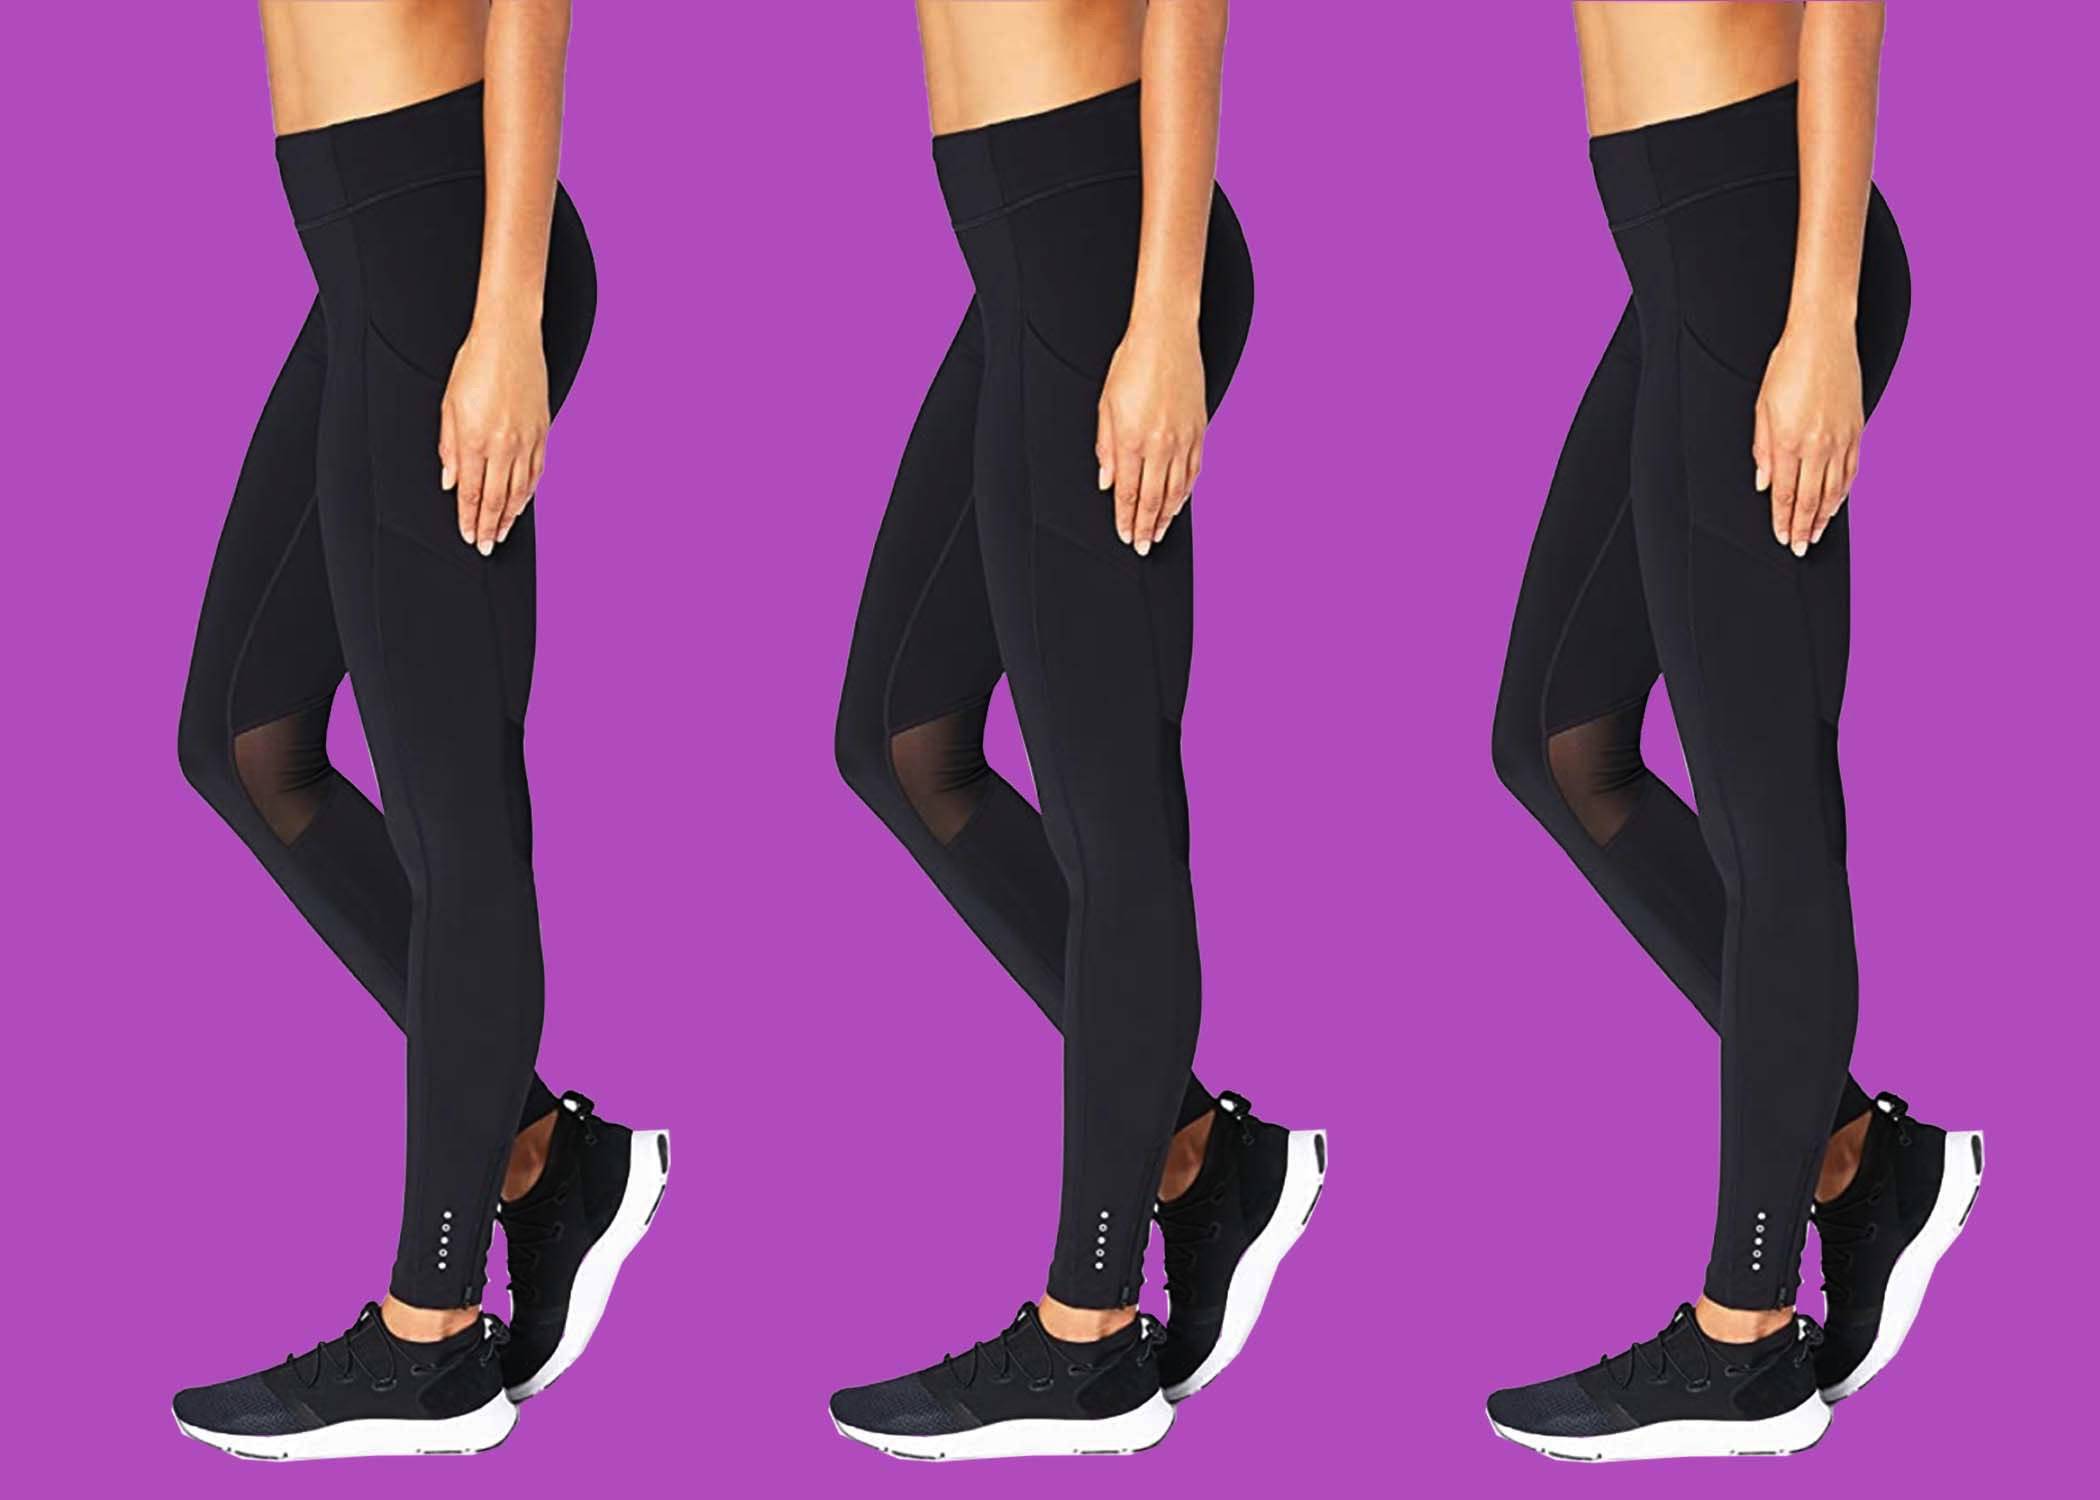 Design your dream leggings with Amazon's incredible early Cyber Monday deal—score $20 off!